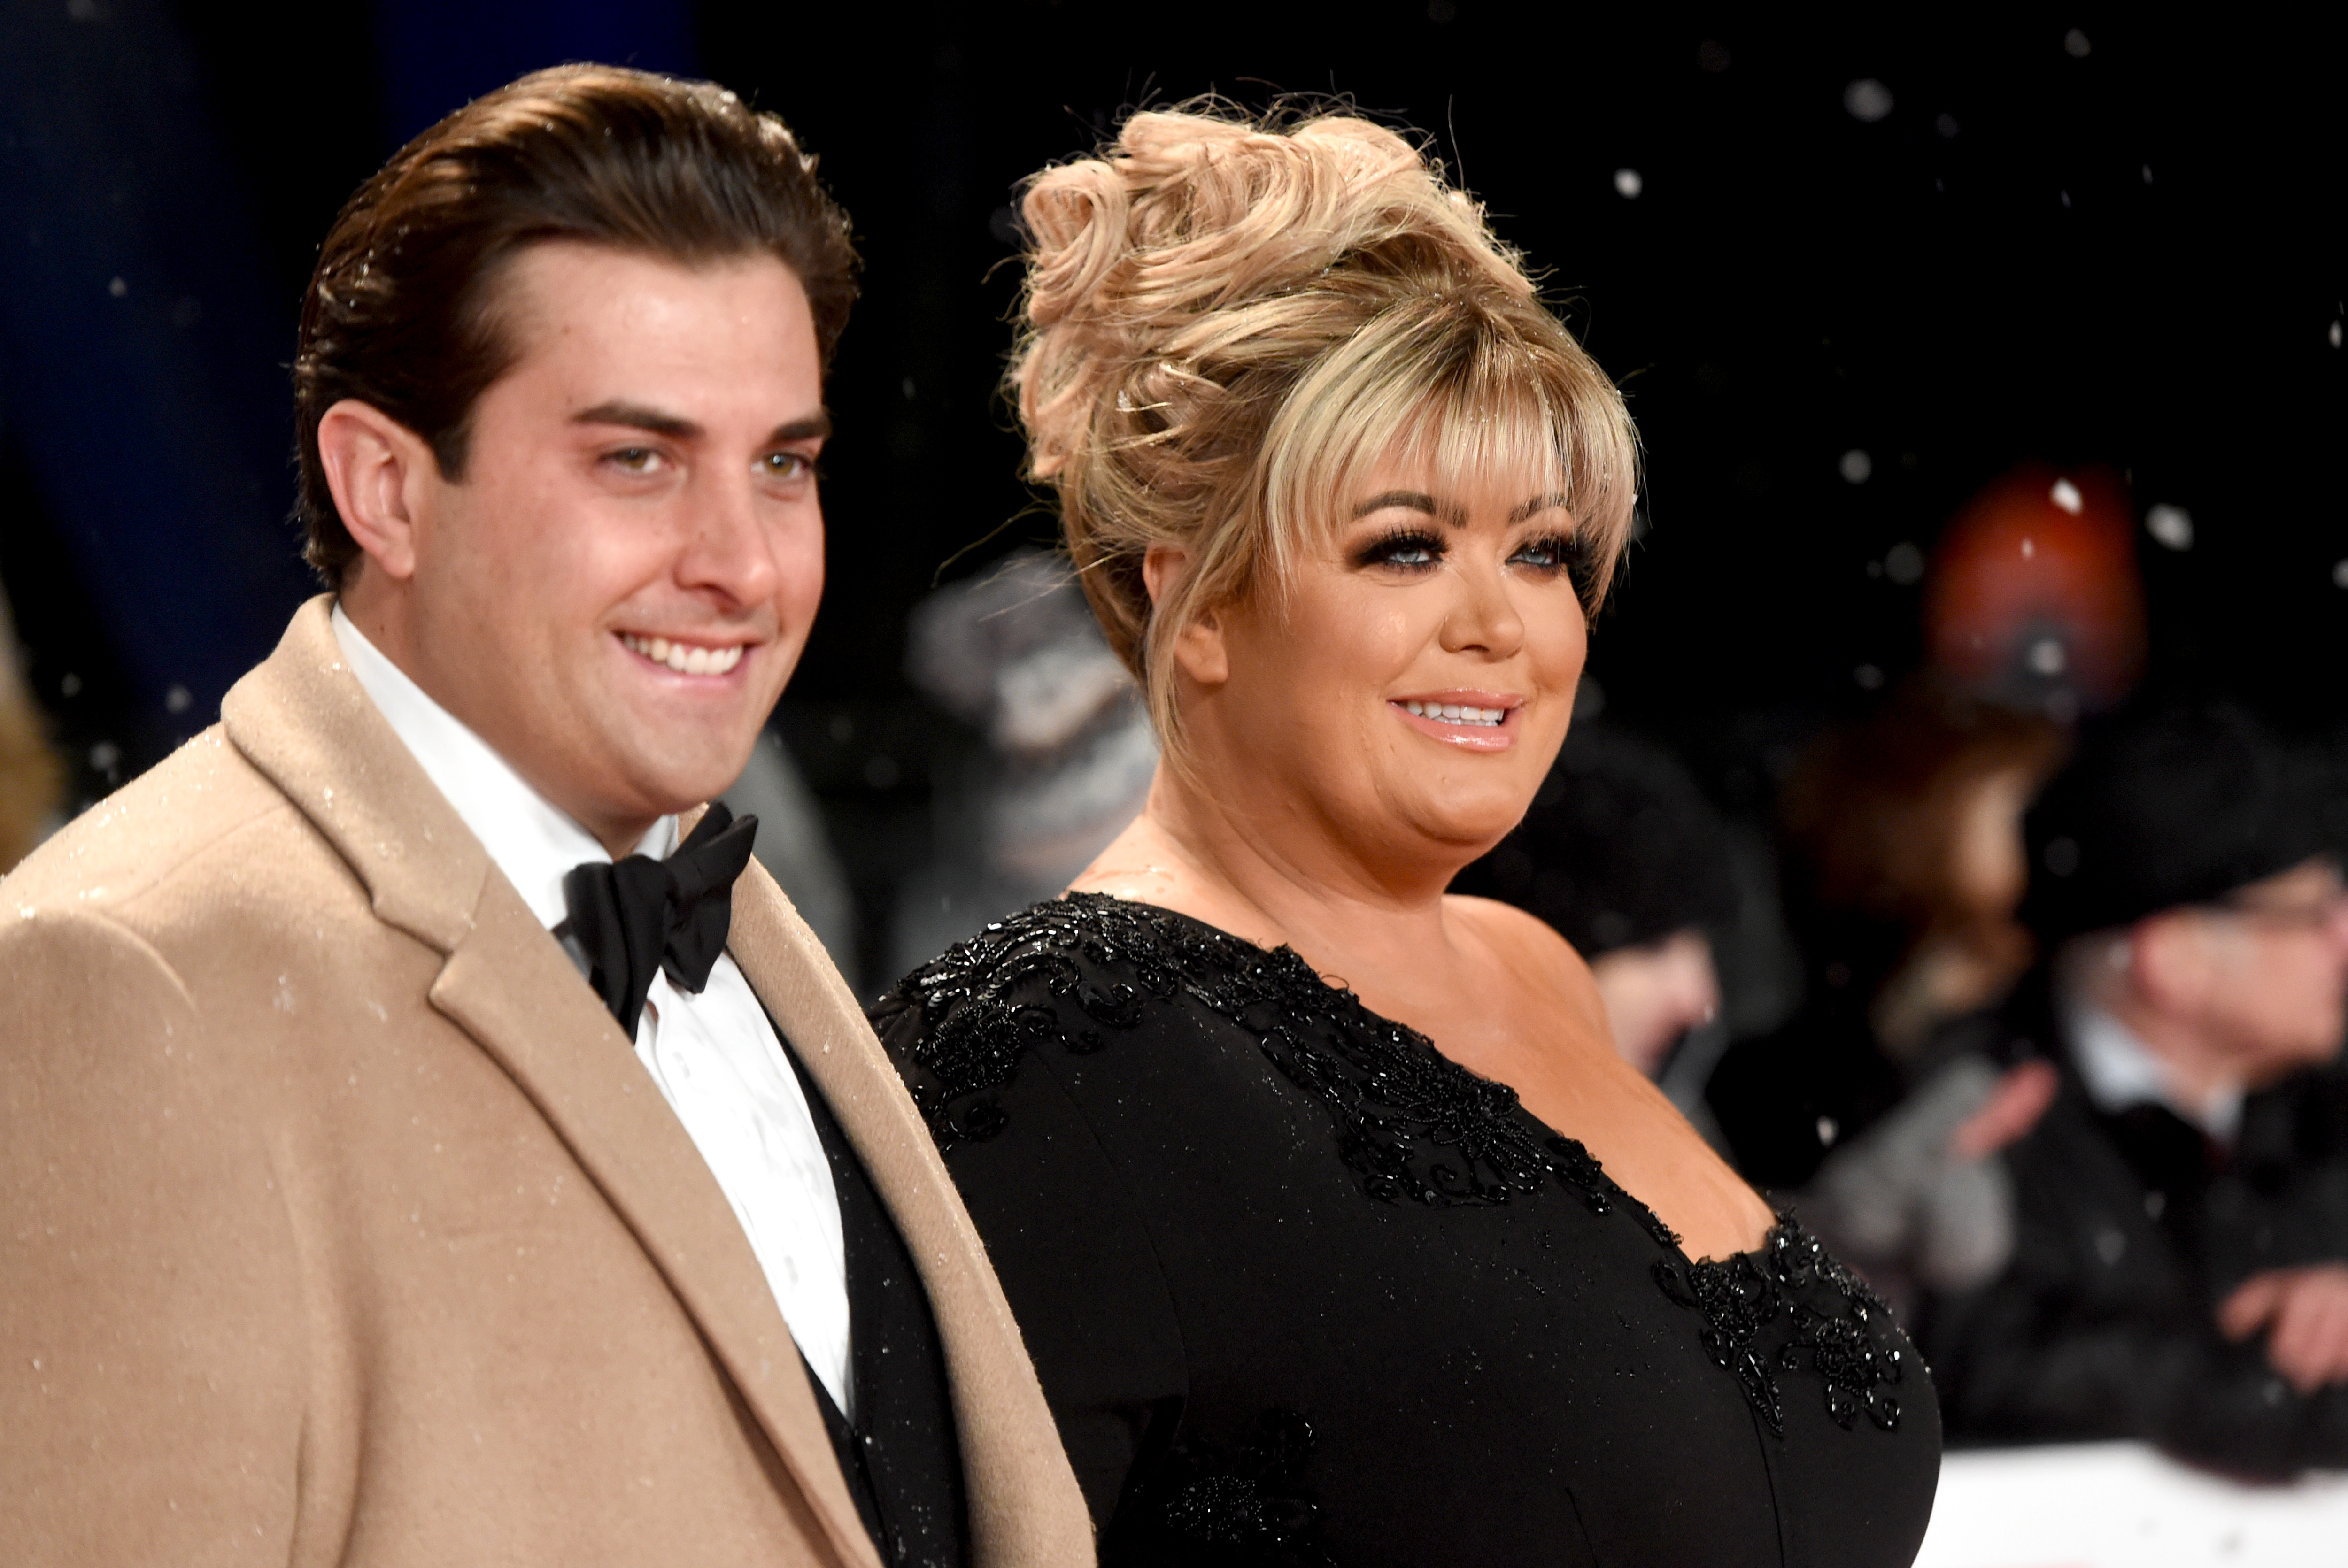 The Only Way Is Essex's Gemma Collins and Arg, James Argent, credit London restaurant Tayyabs in Whitechapel with starting their romance